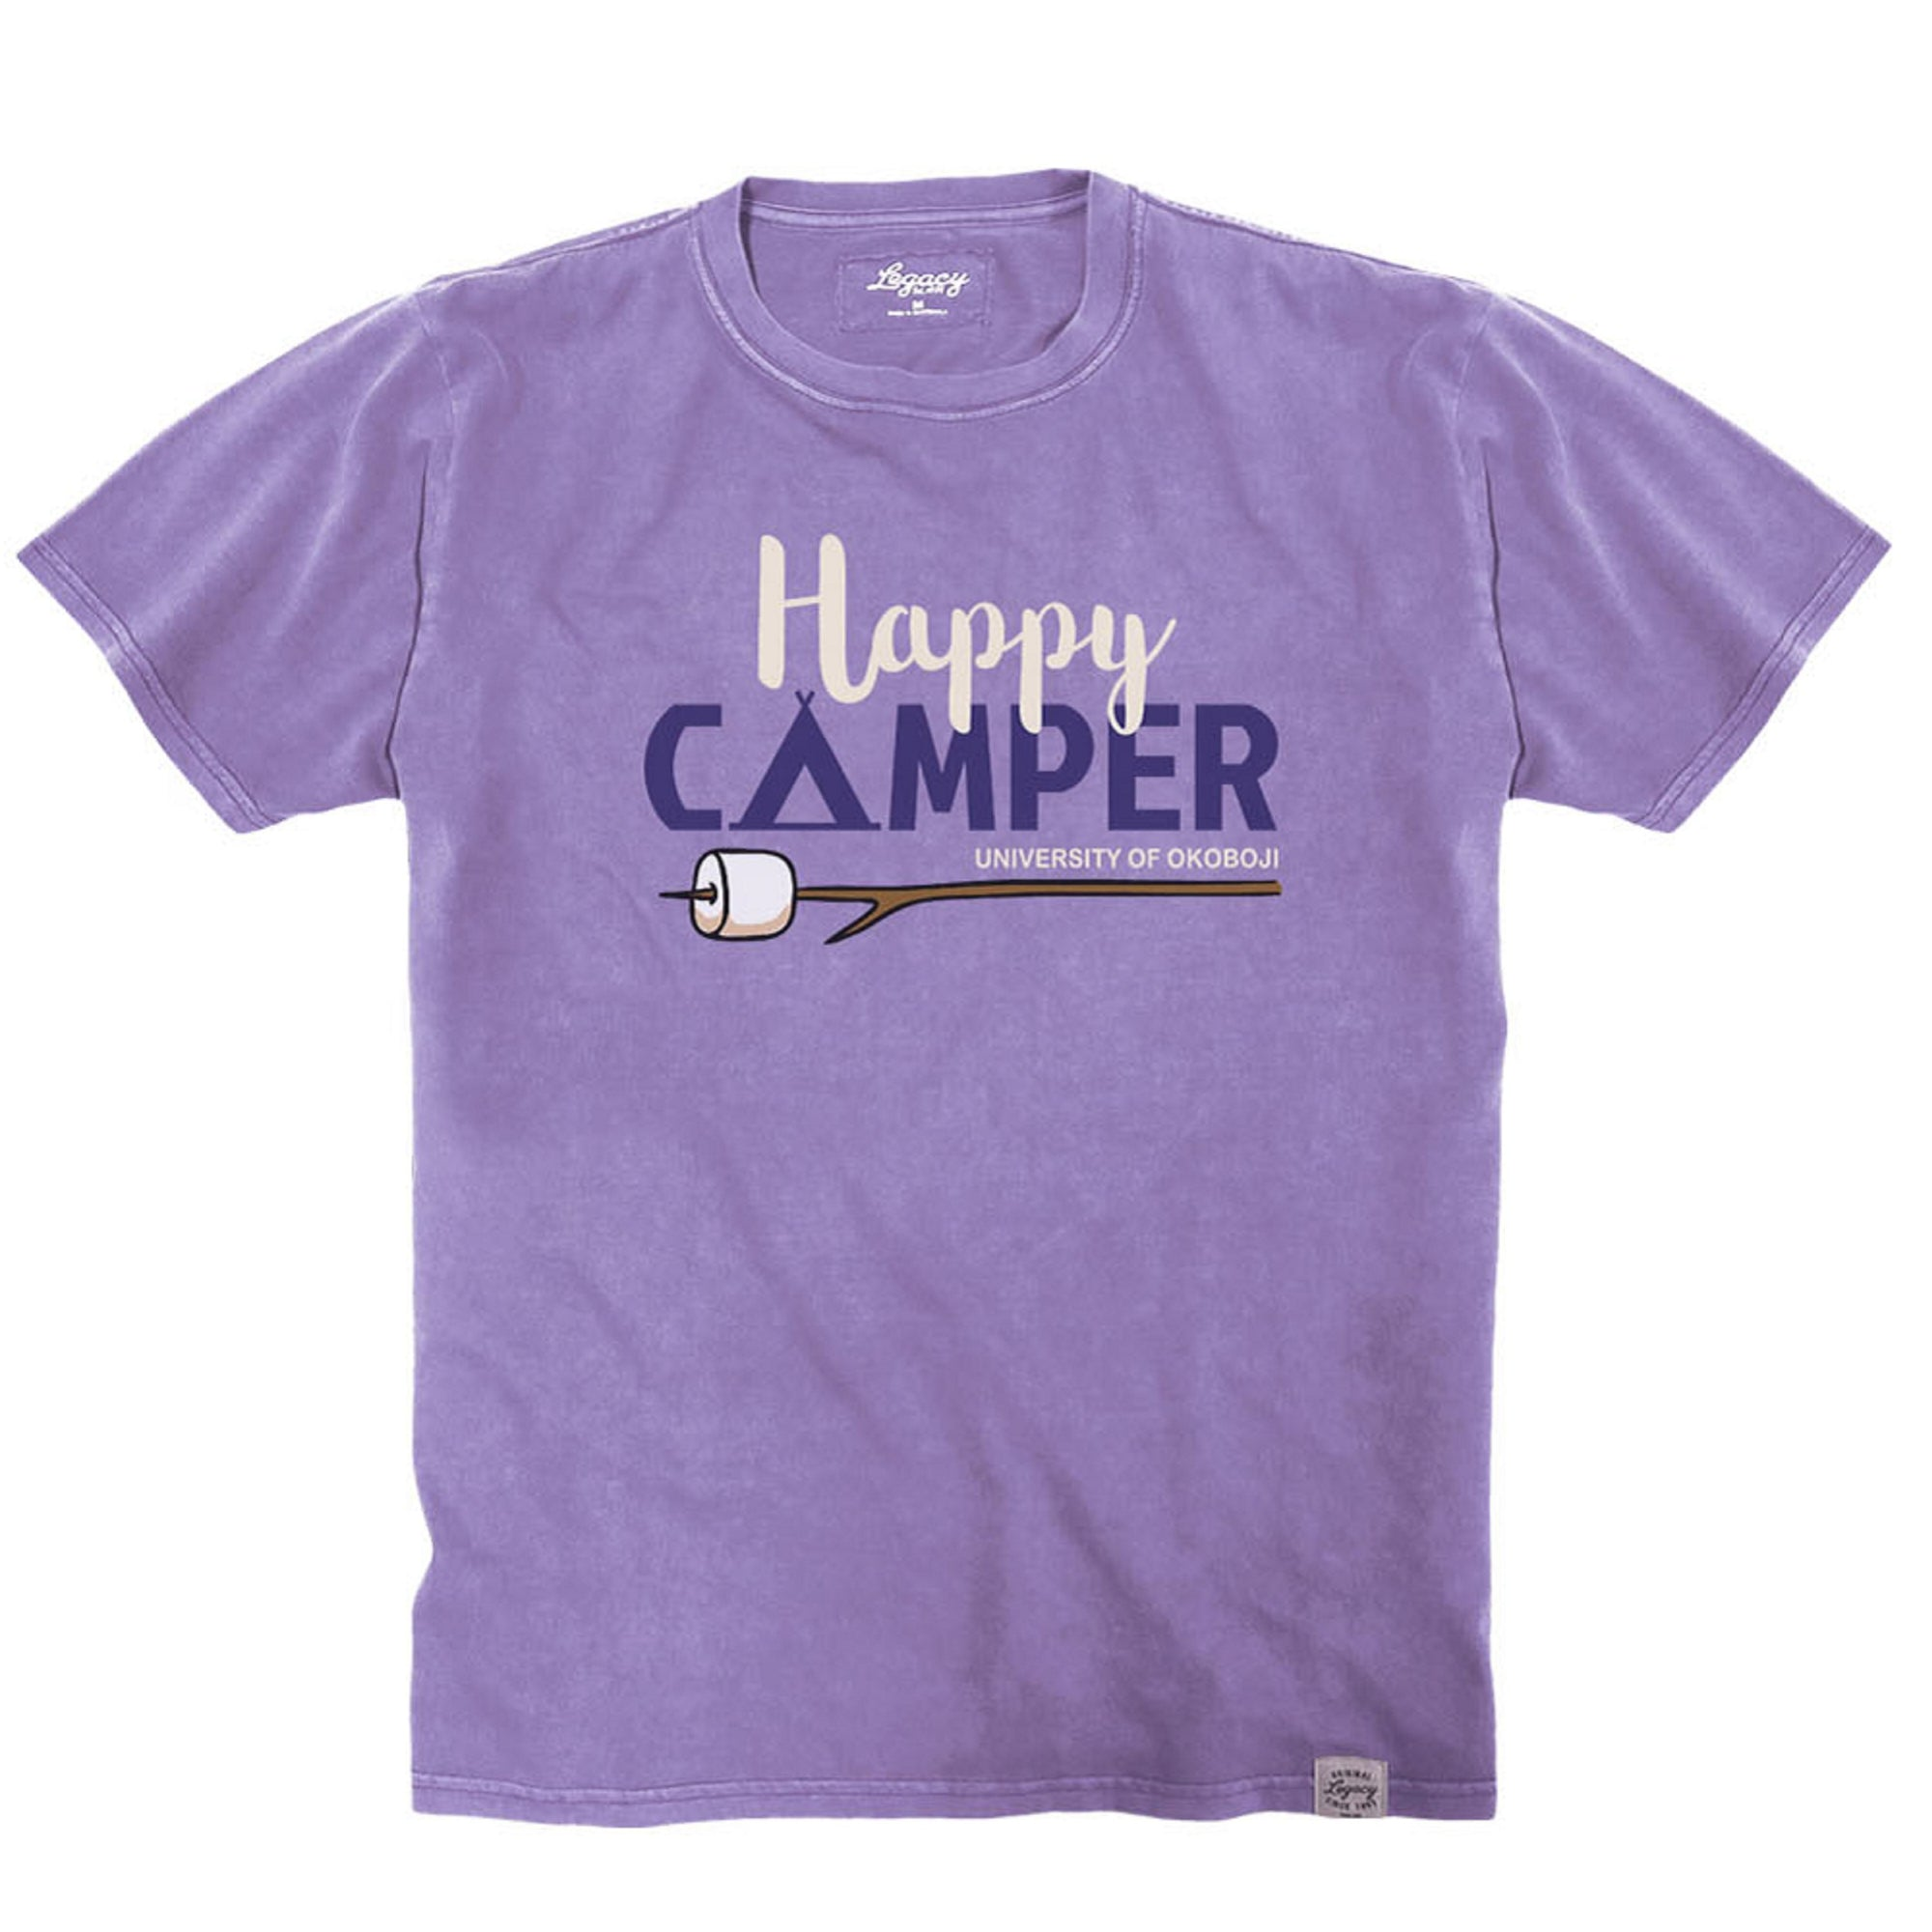 U of O Little Happy Camper Youth Vintage Wash Crewneck Tee - Lavender